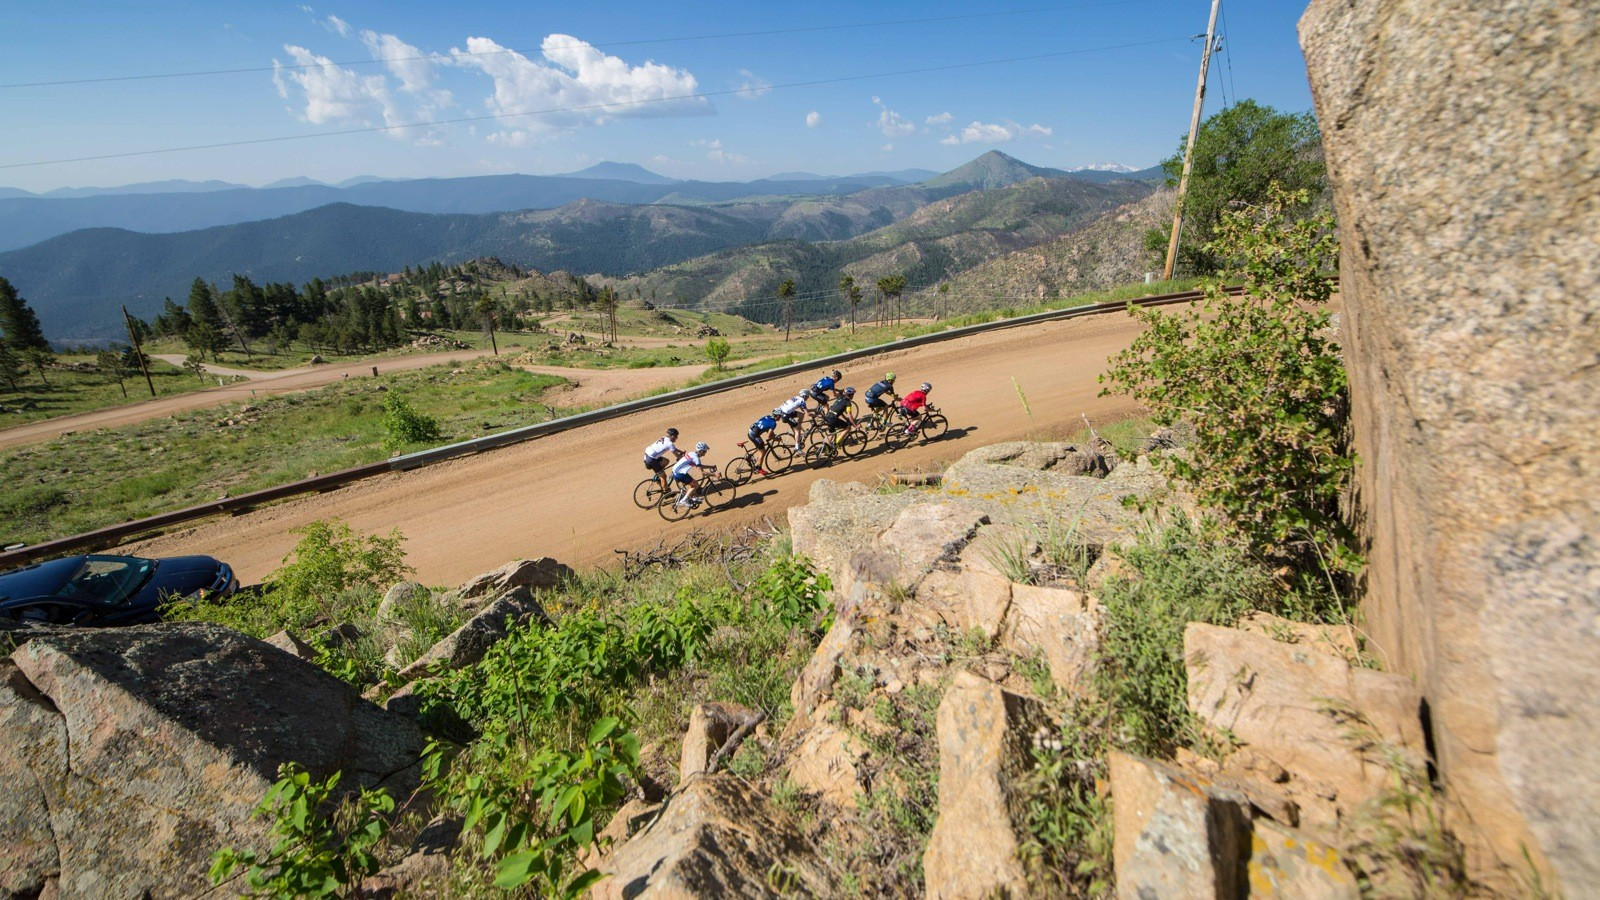 Most of the dirt roads are smooth, hardpacked and definitely doable on 25-28mm tires